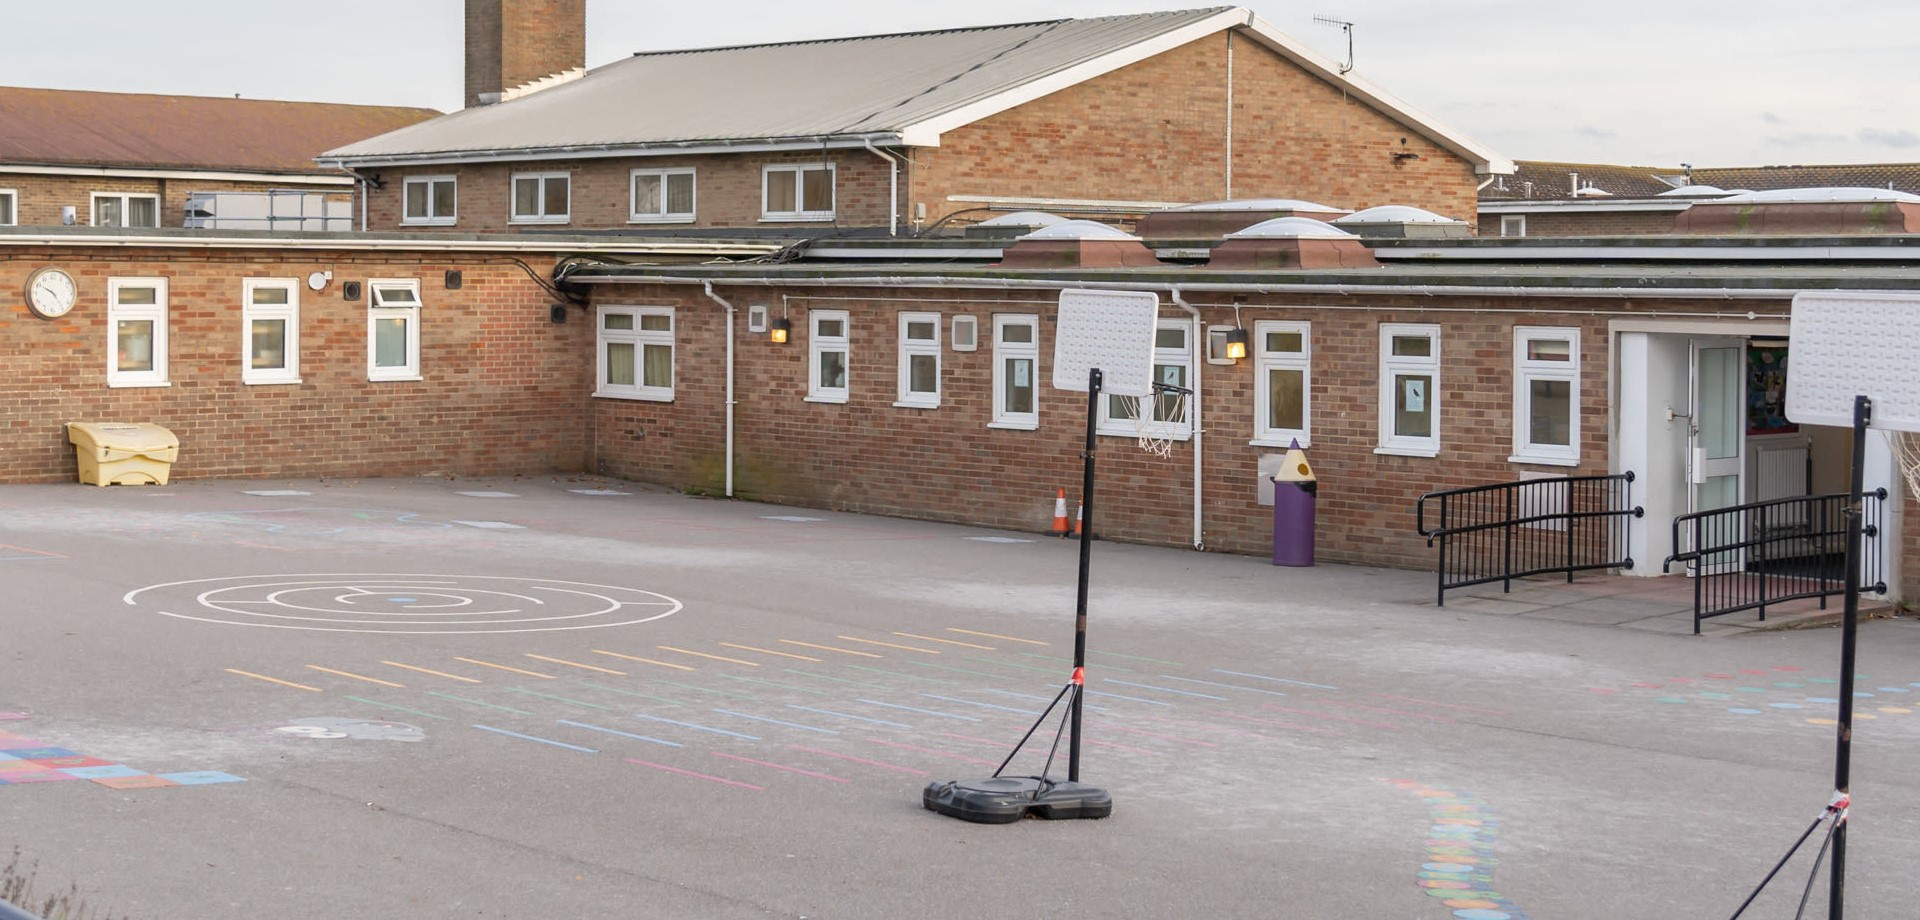 Mile_Oak_Primary_School-230edit